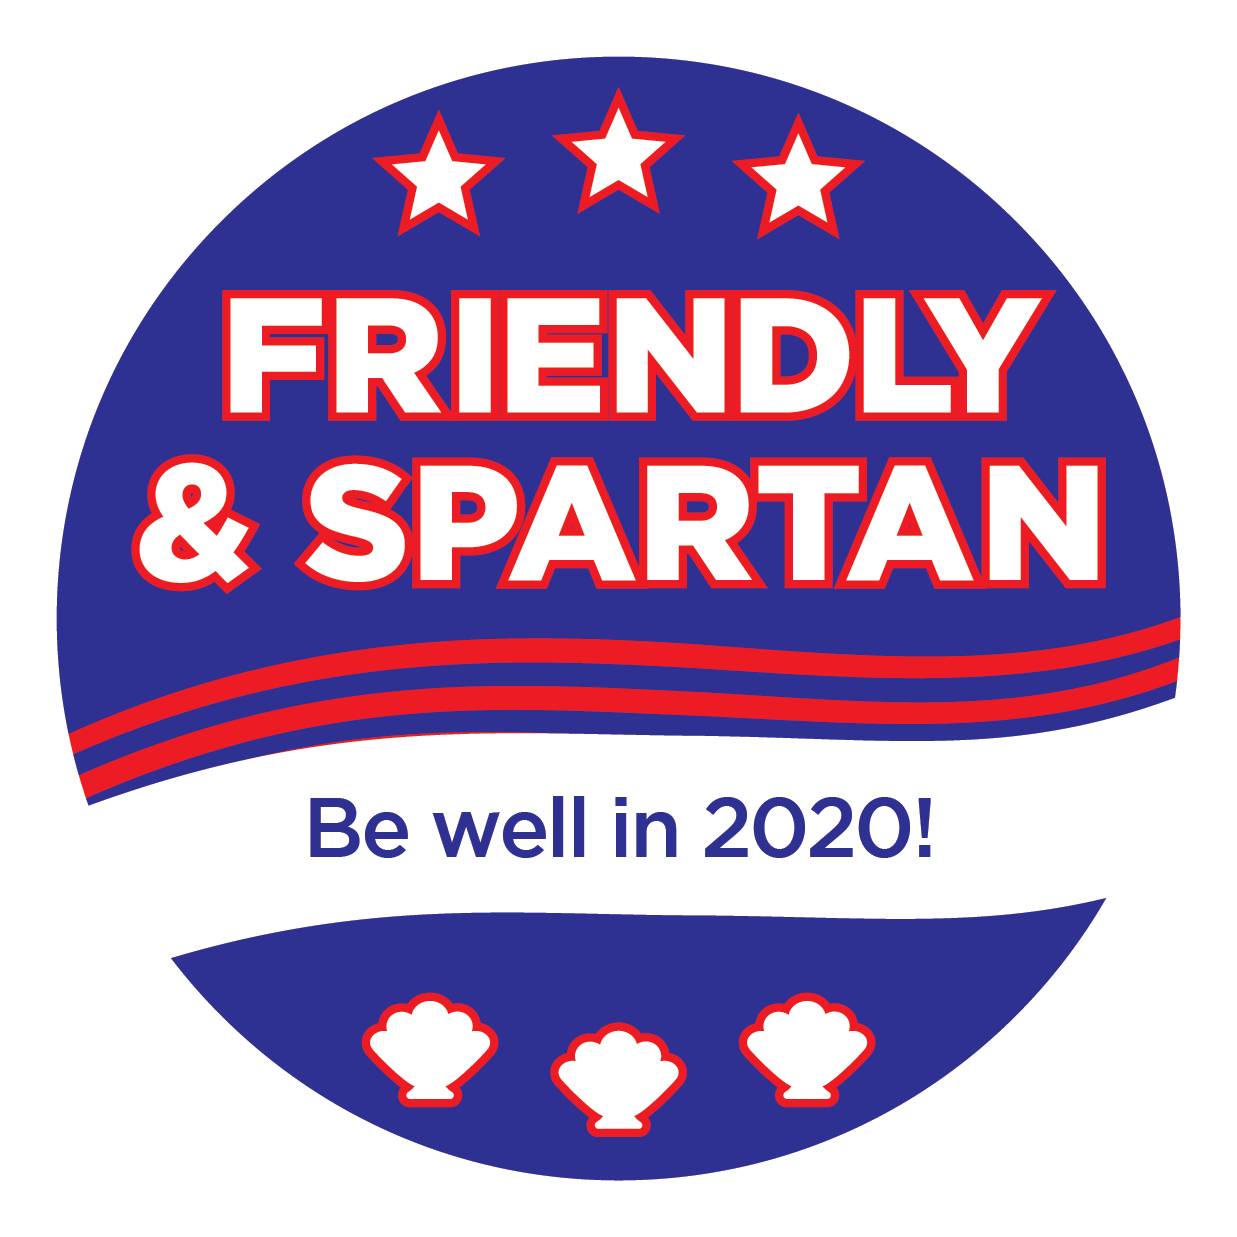 Friendly & Spartan Be well in 2020